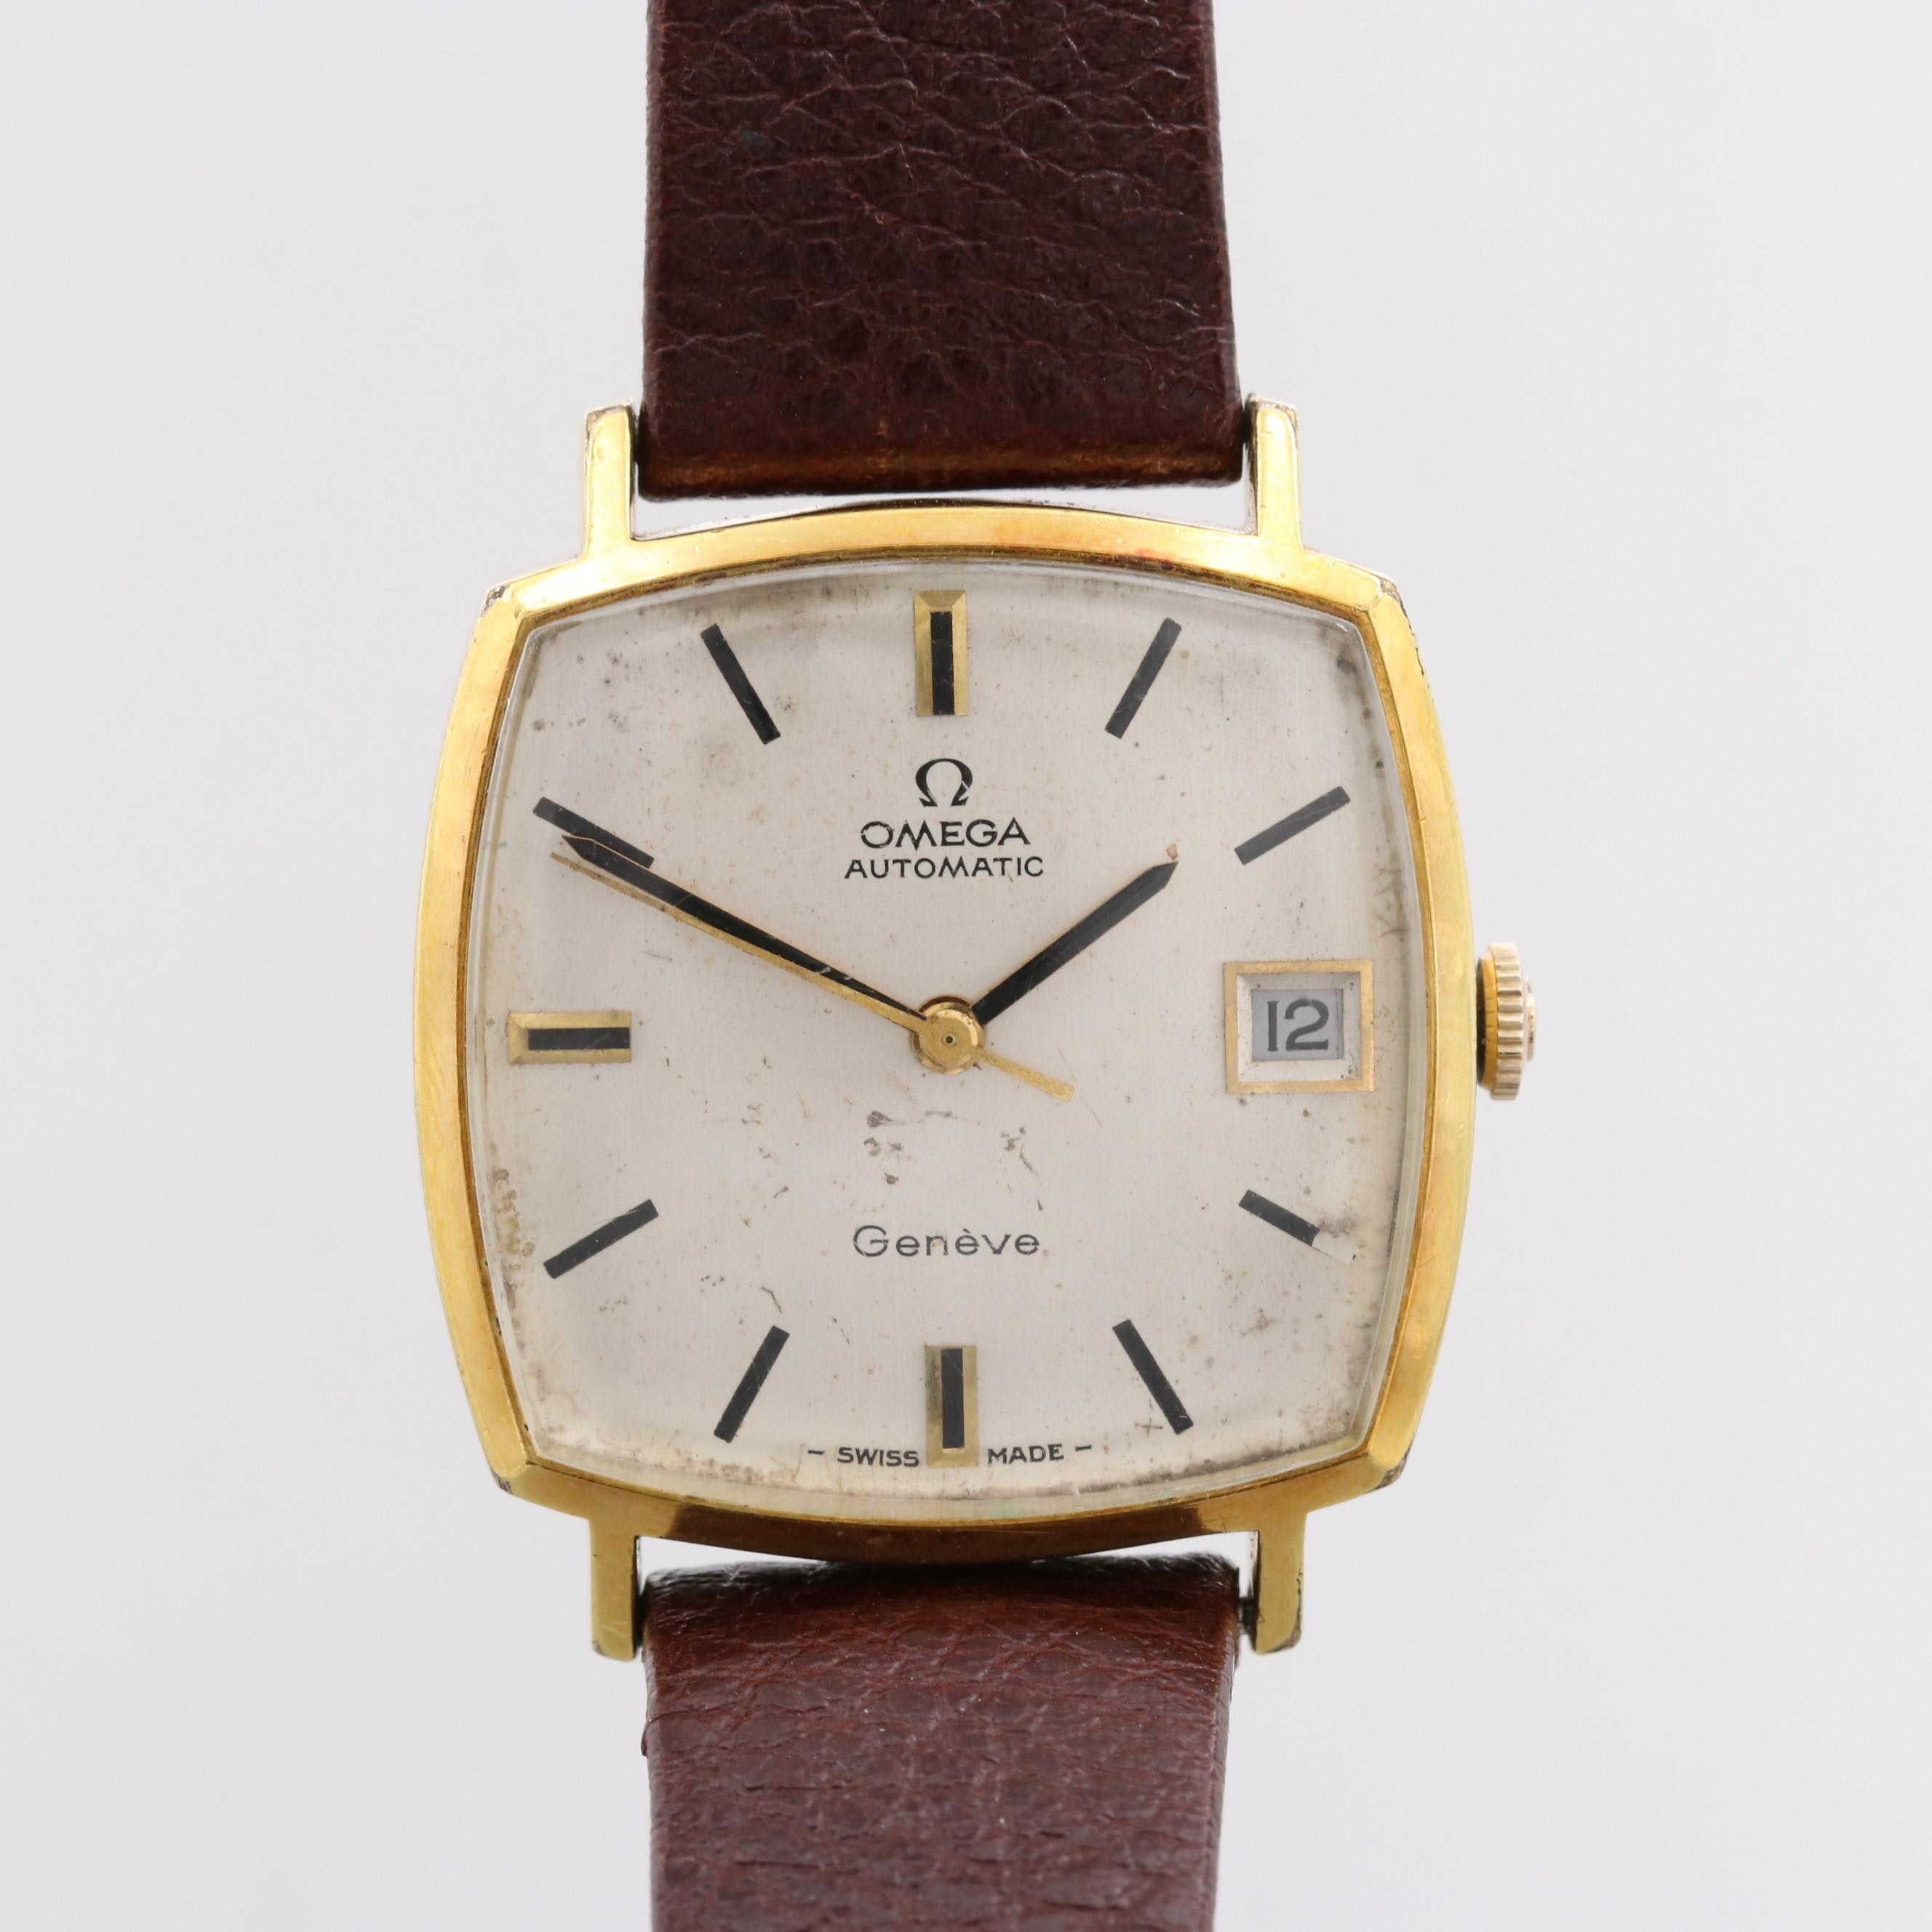 Vintage Omega Geneve Gold-Tone Automatic Wristwatch